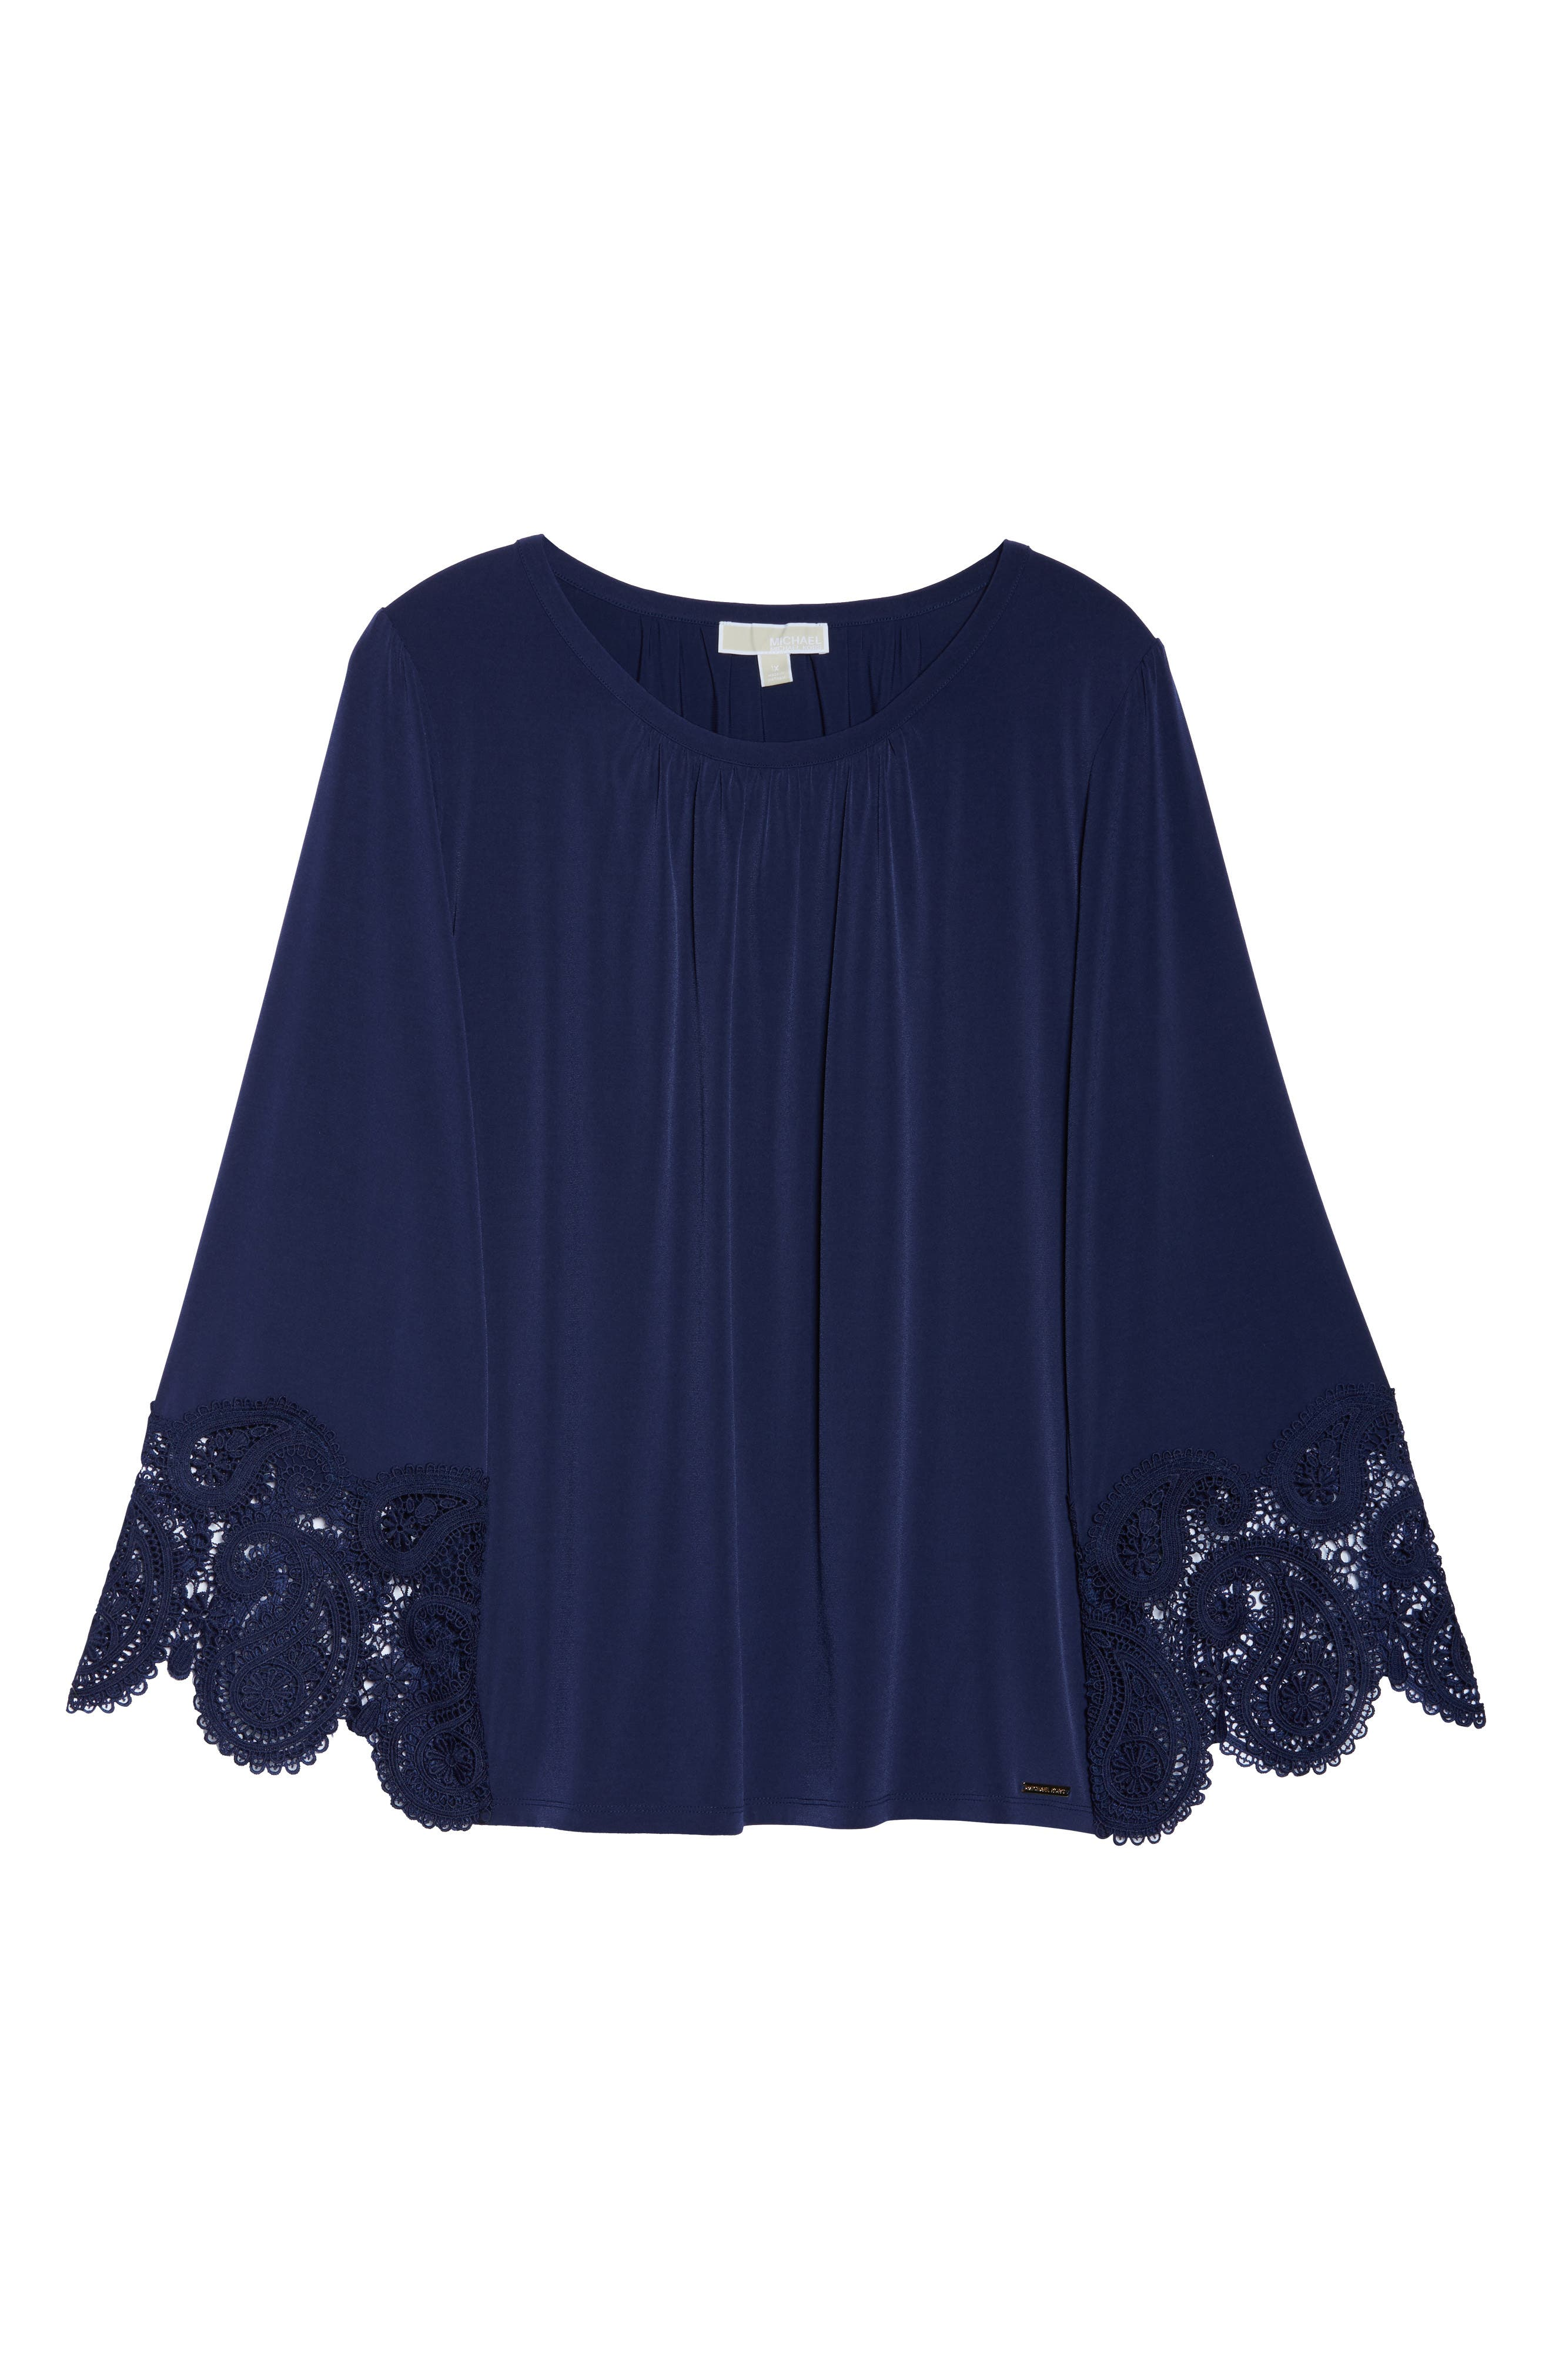 Lace Cuff Top,                             Alternate thumbnail 7, color,